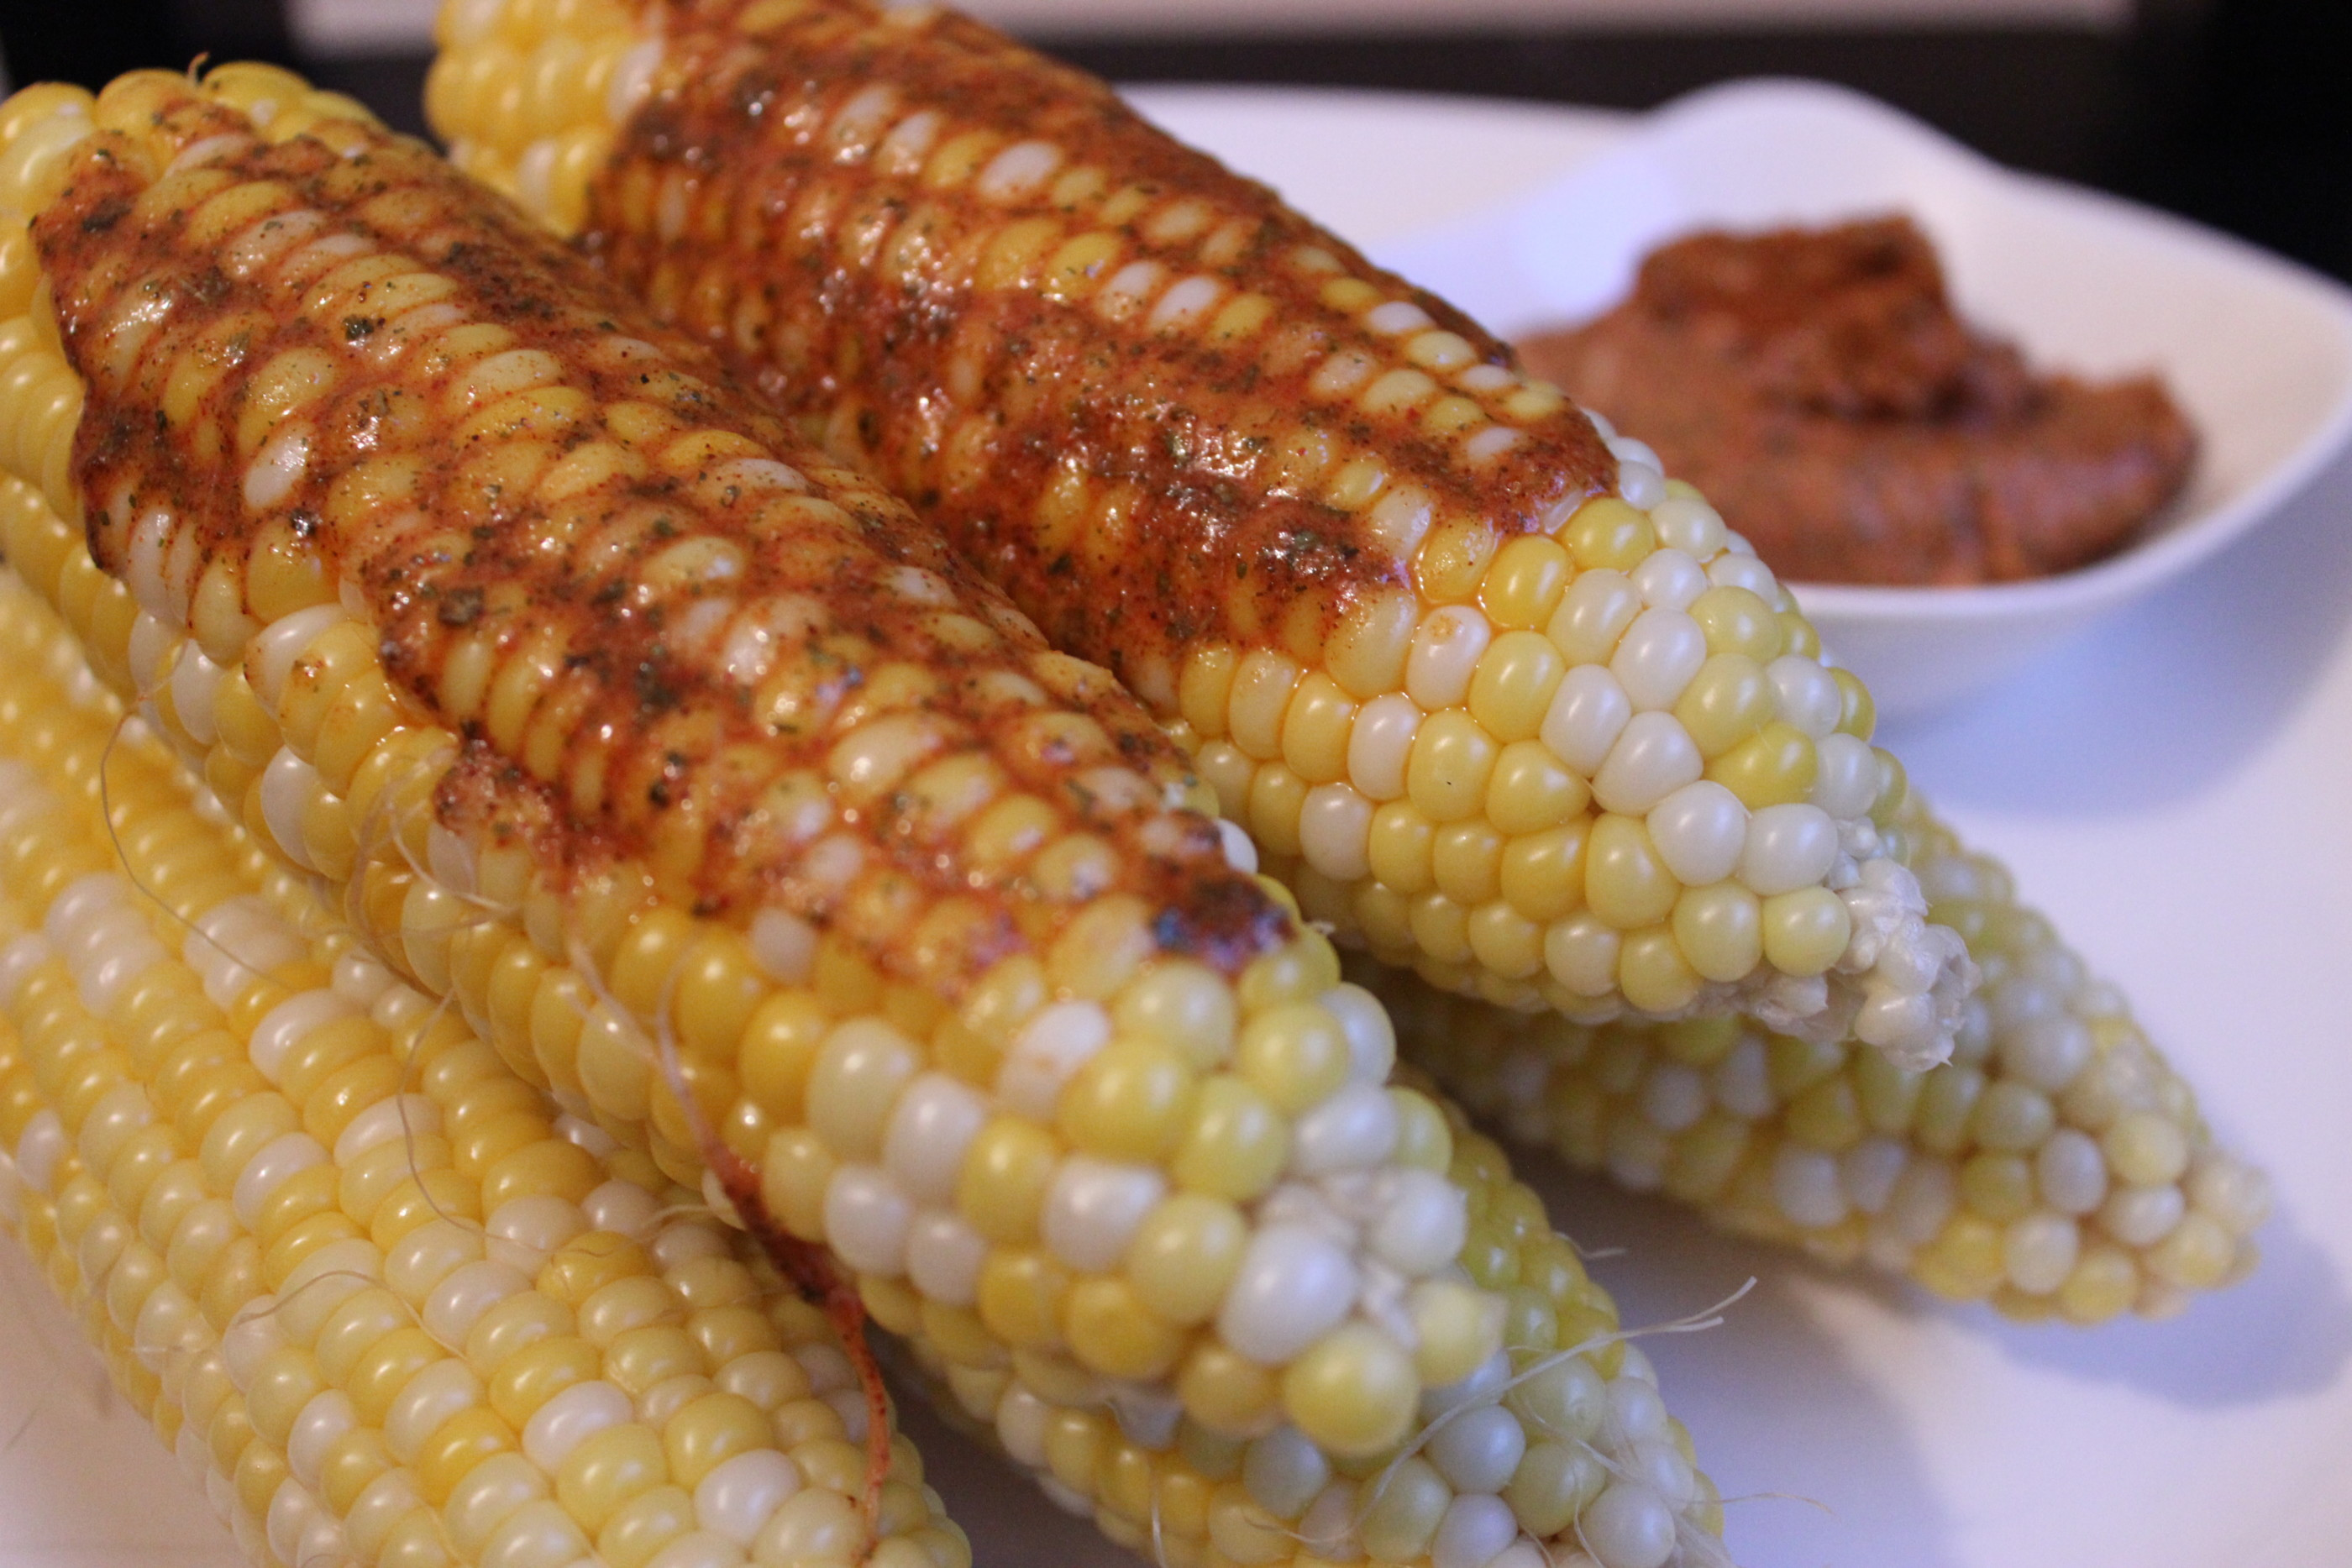 Grilled Corn On The Cob Recipe  Grilled Corn on the Cob with Smoky Cajun Butter These